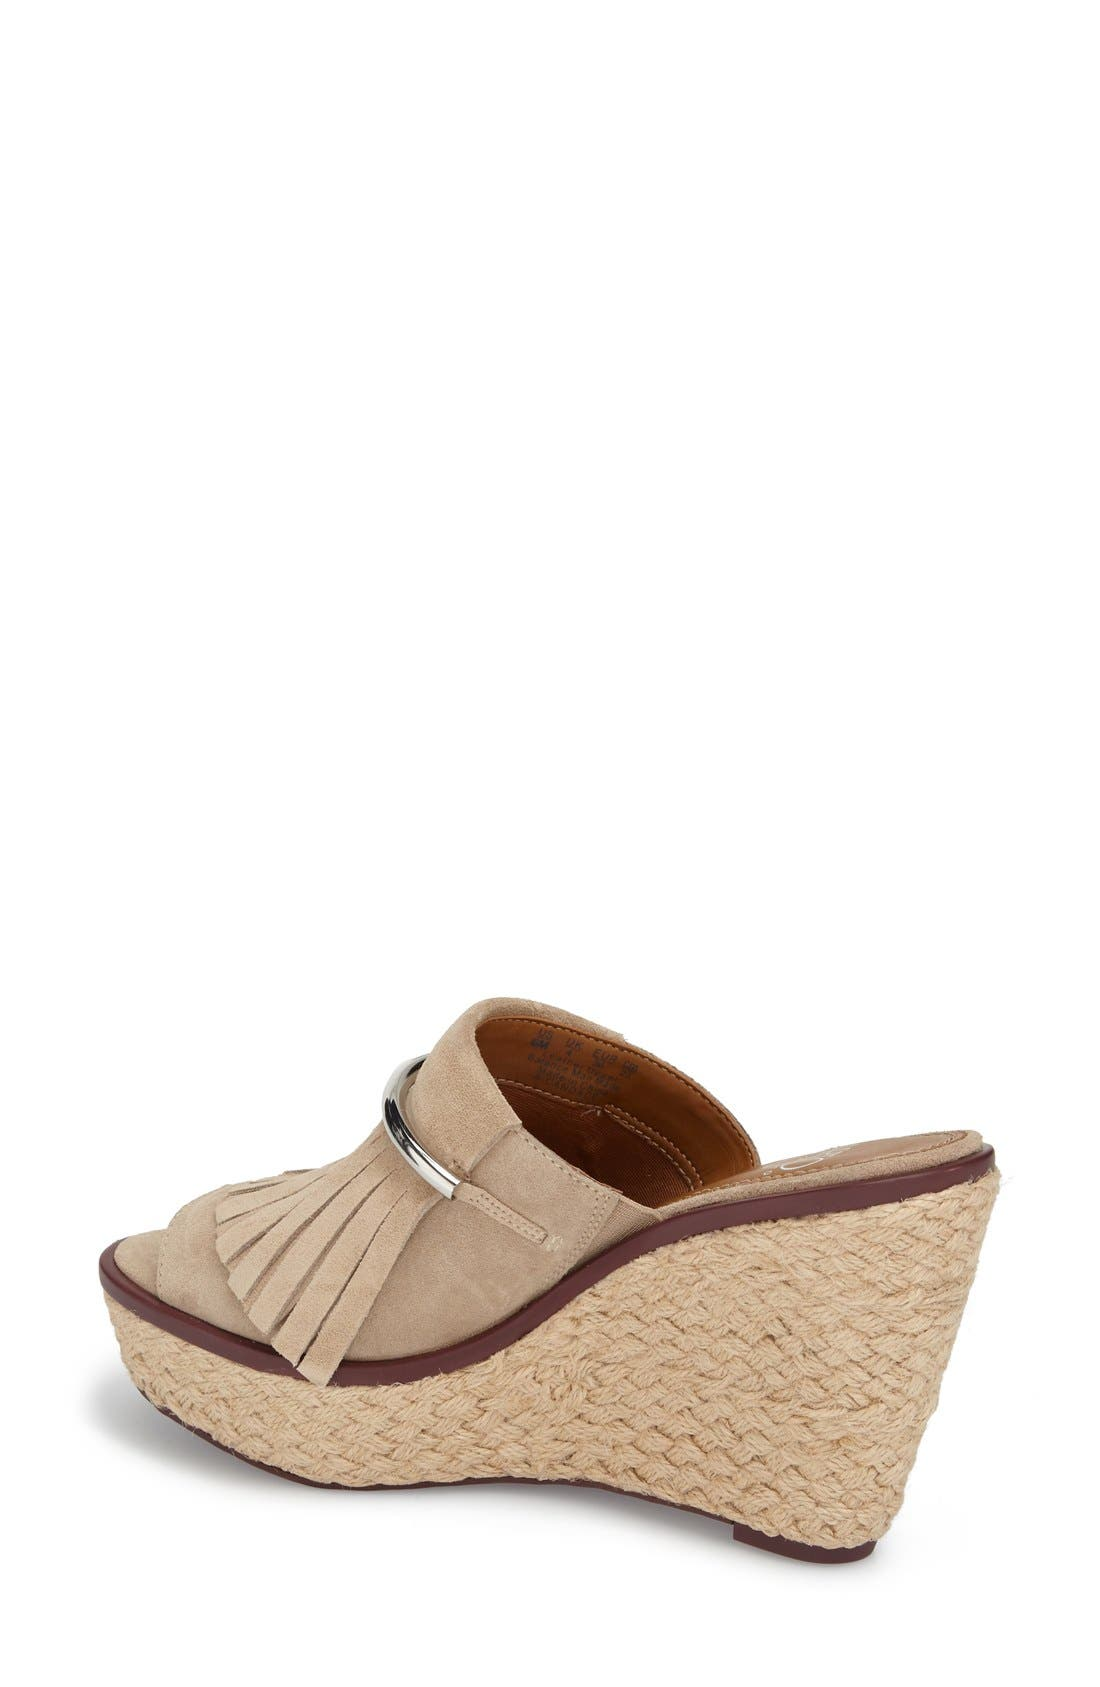 'Candace' Wedge Mule,                             Alternate thumbnail 2, color,                             Soft Tan Kid Suede